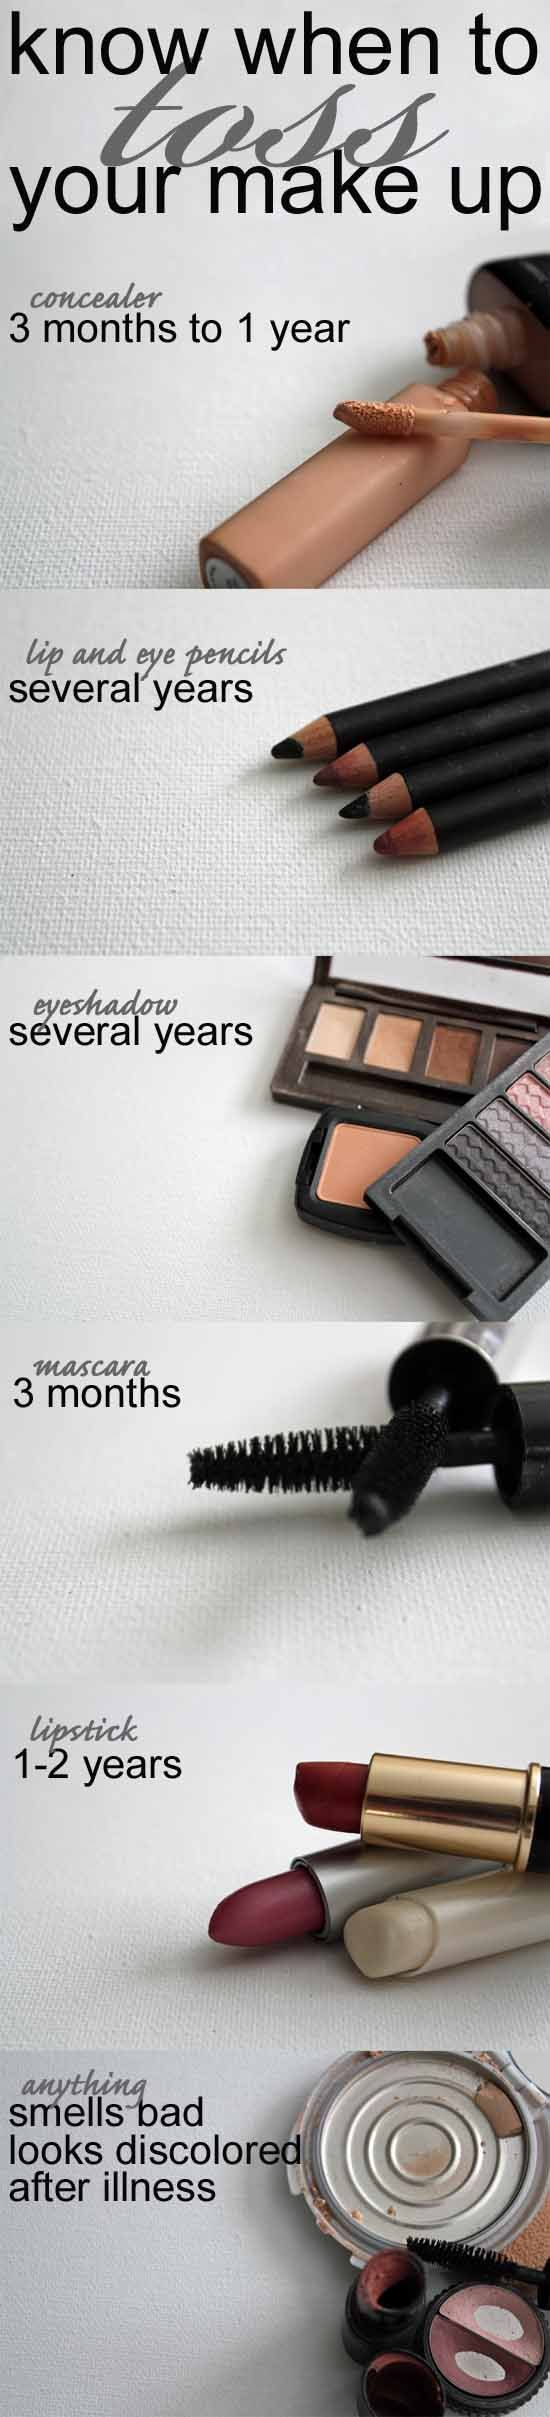 How to Tell when to Toss Your Old Makeup foto